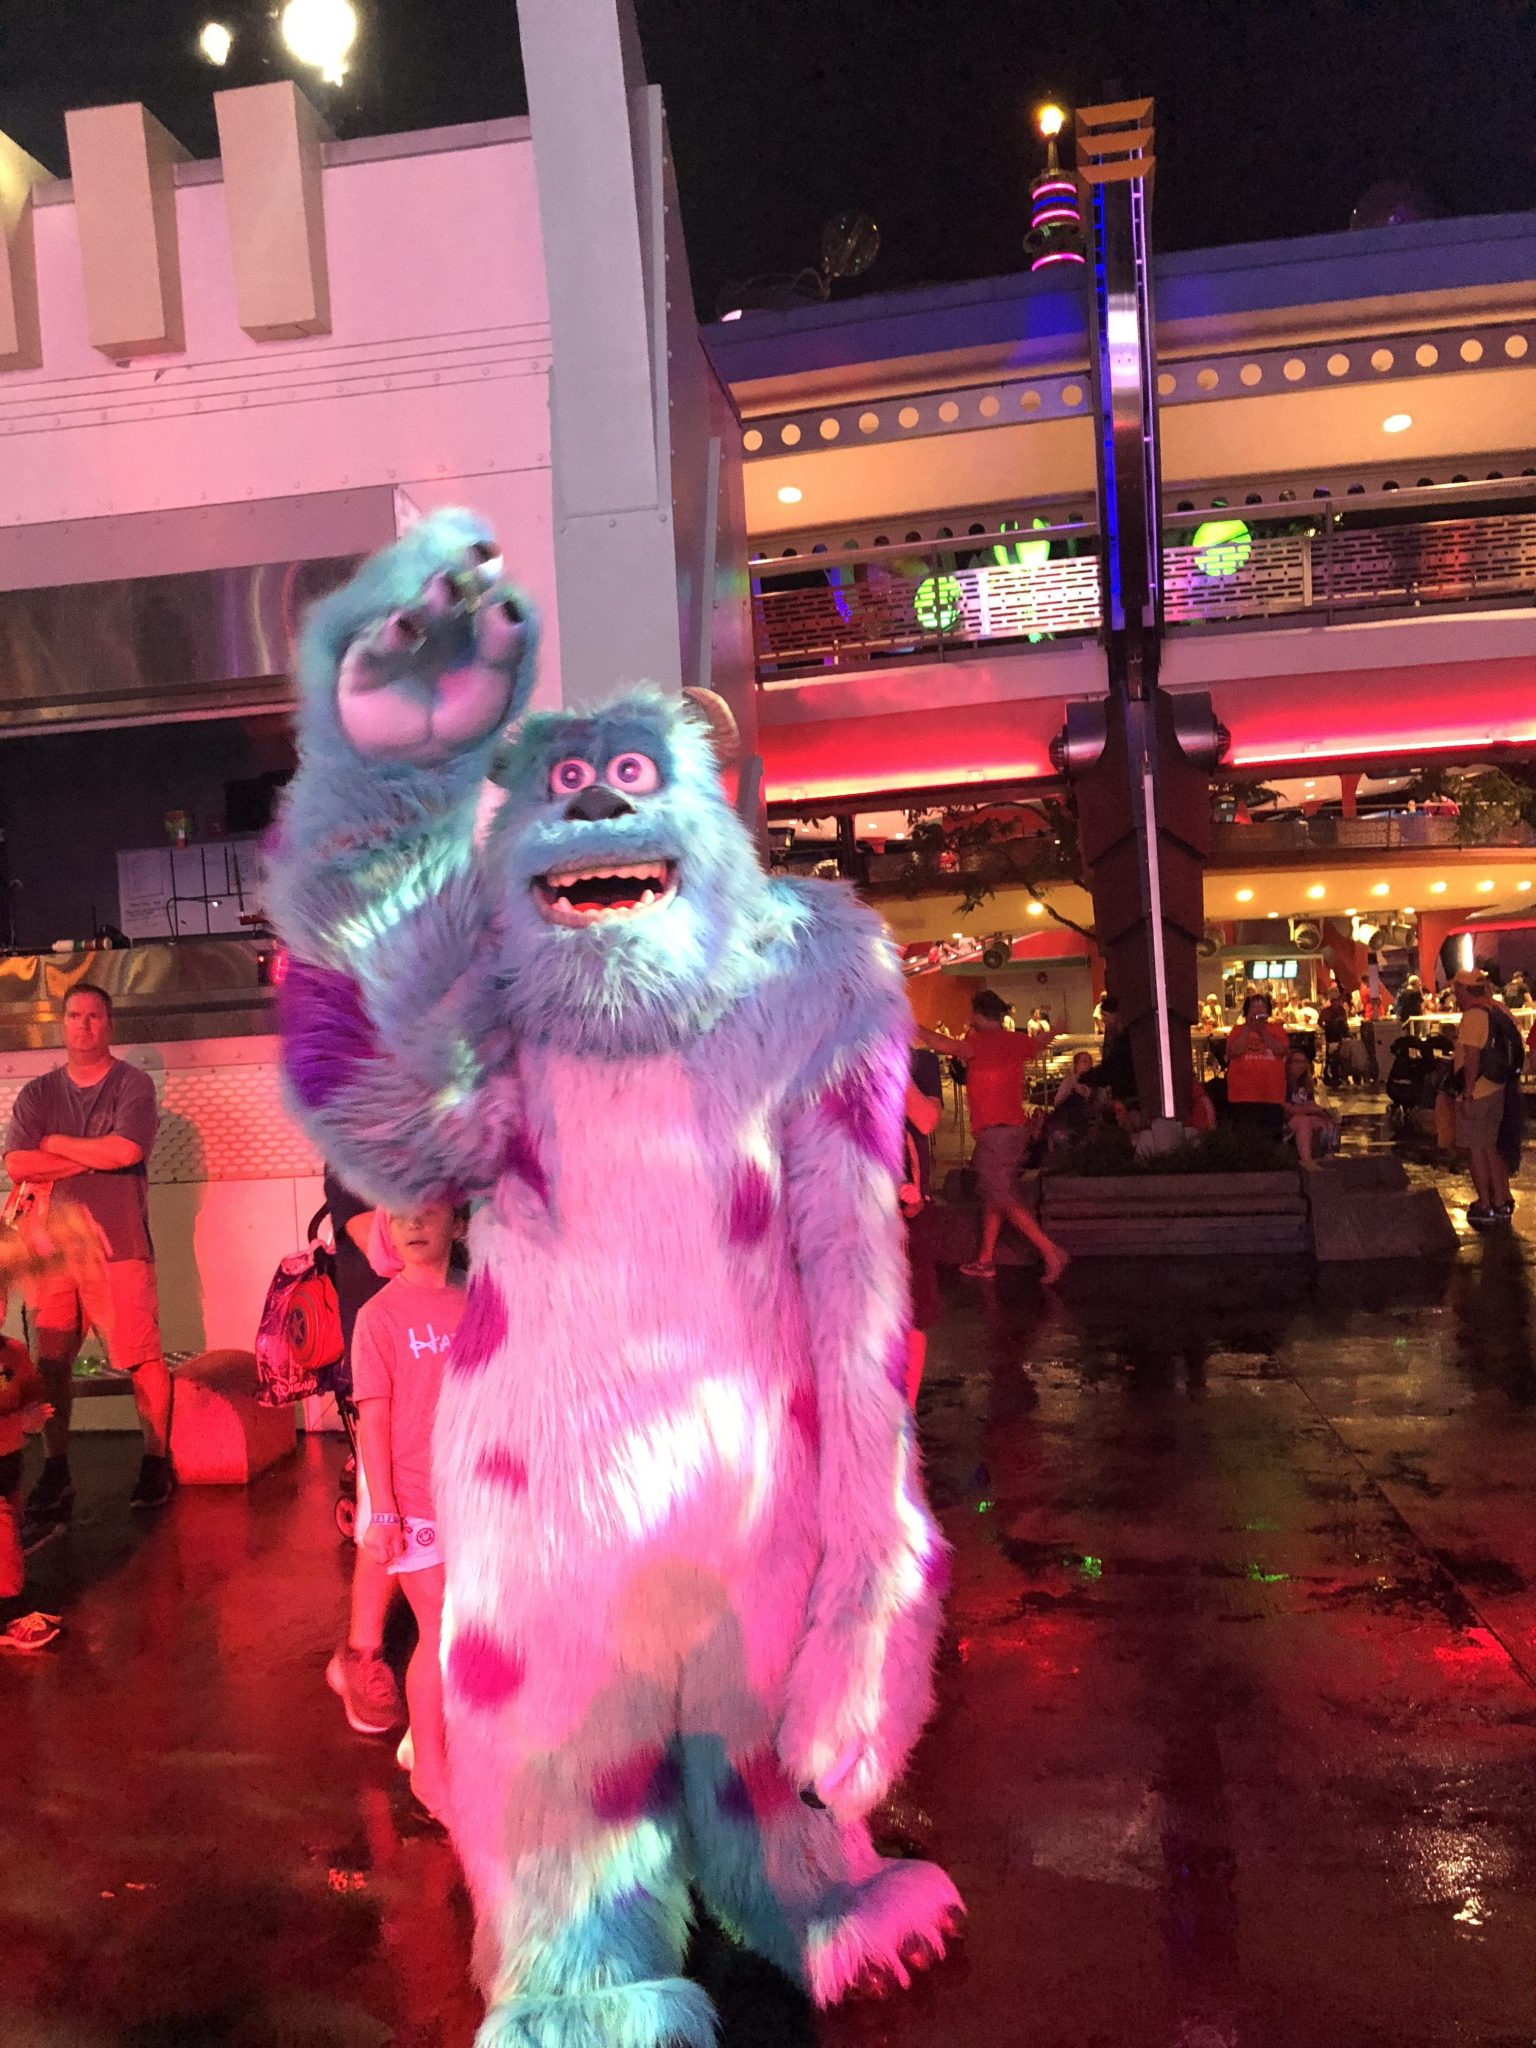 Sully dancing | Mickeys Not So Scary: Disneys Spookiest Party | www.herlifeinruins.com